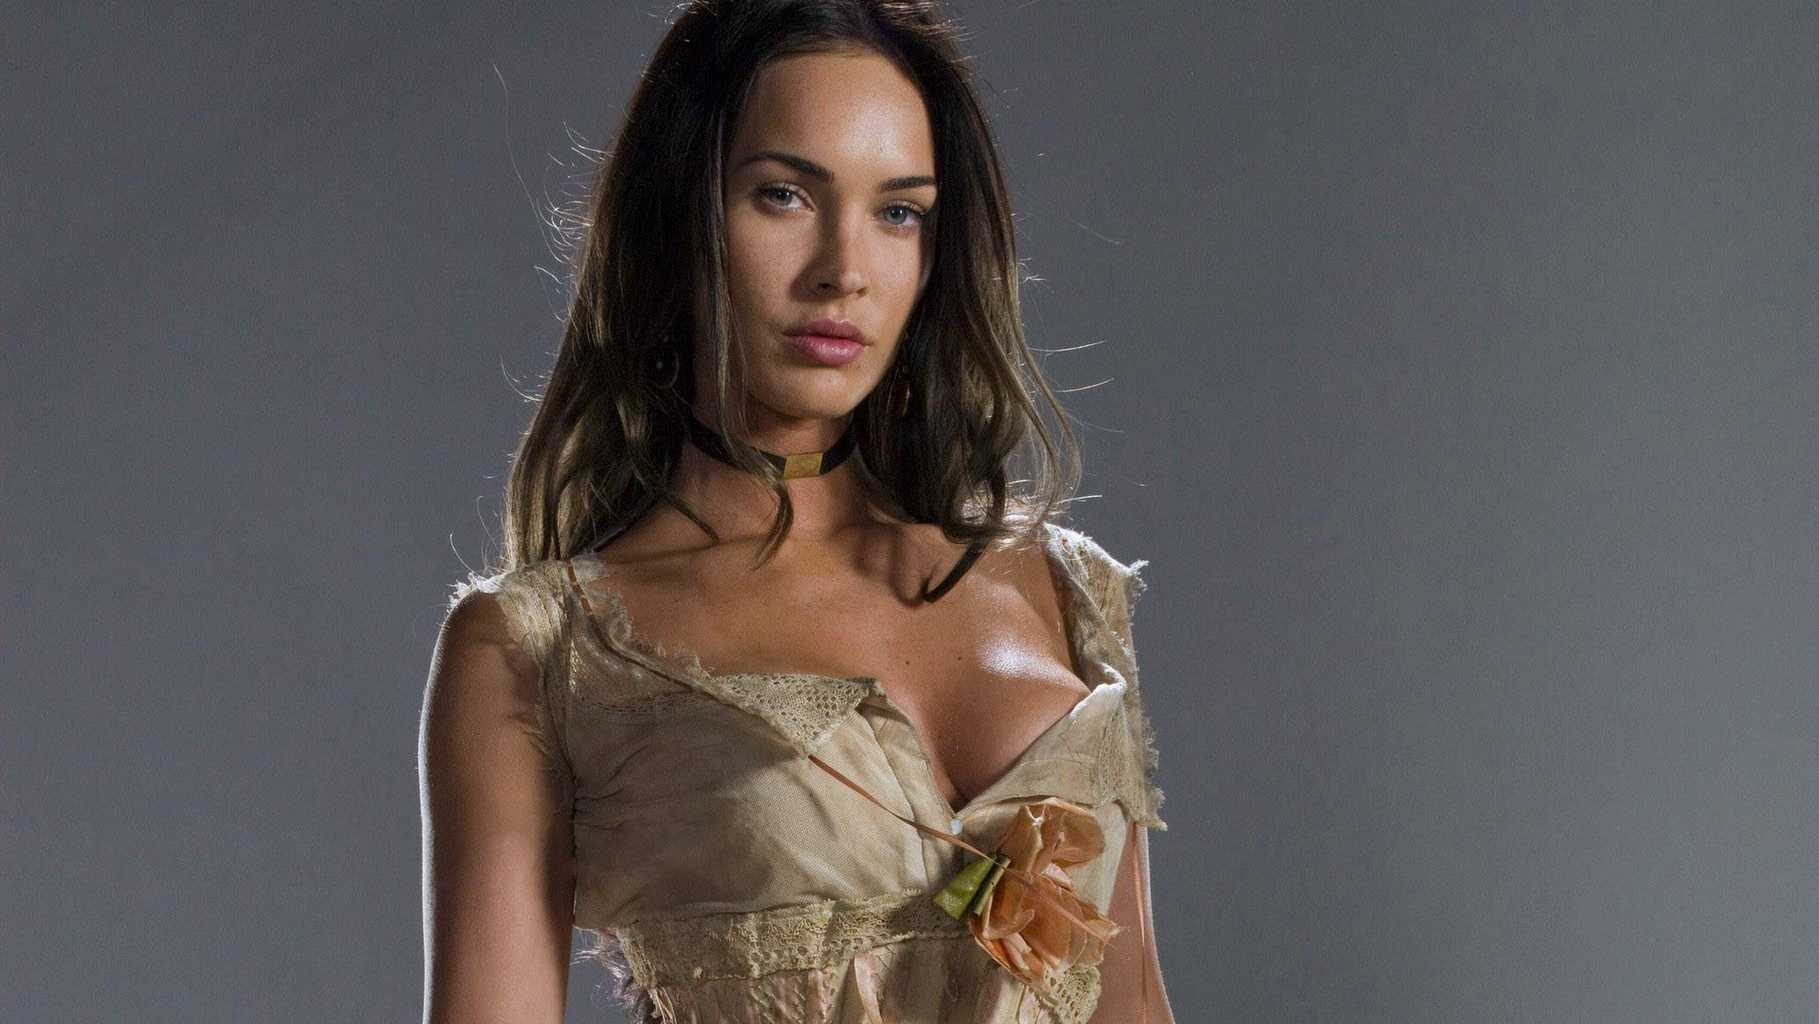 1b5ee0e3e11a6 The 100 Sexiest Movie Stars: The Women   Movies   Empire